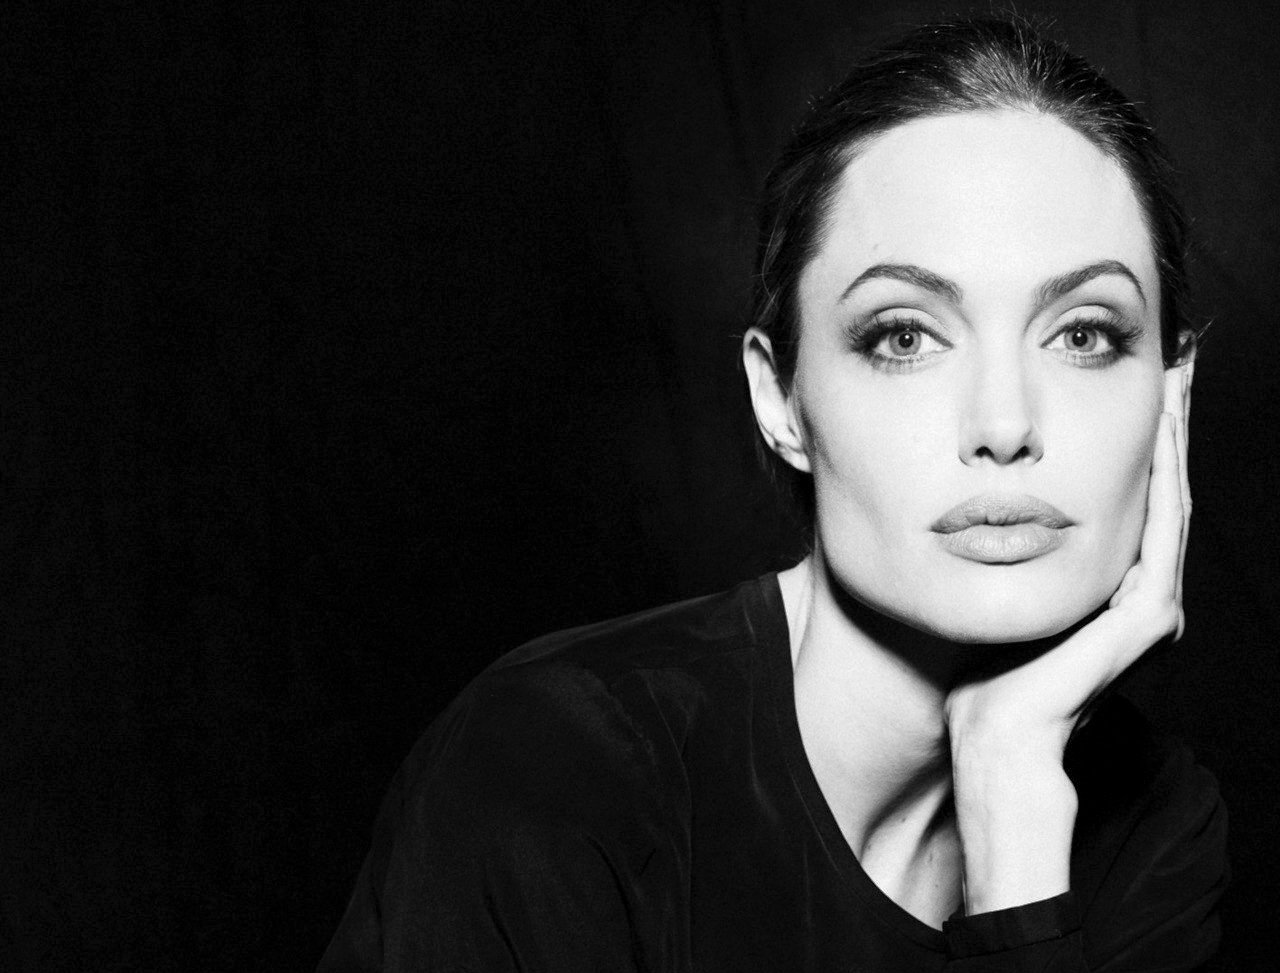 Angelina Jolie by Sofia Sanchez & Mauro Mongiello for Interview Magazine December 2011